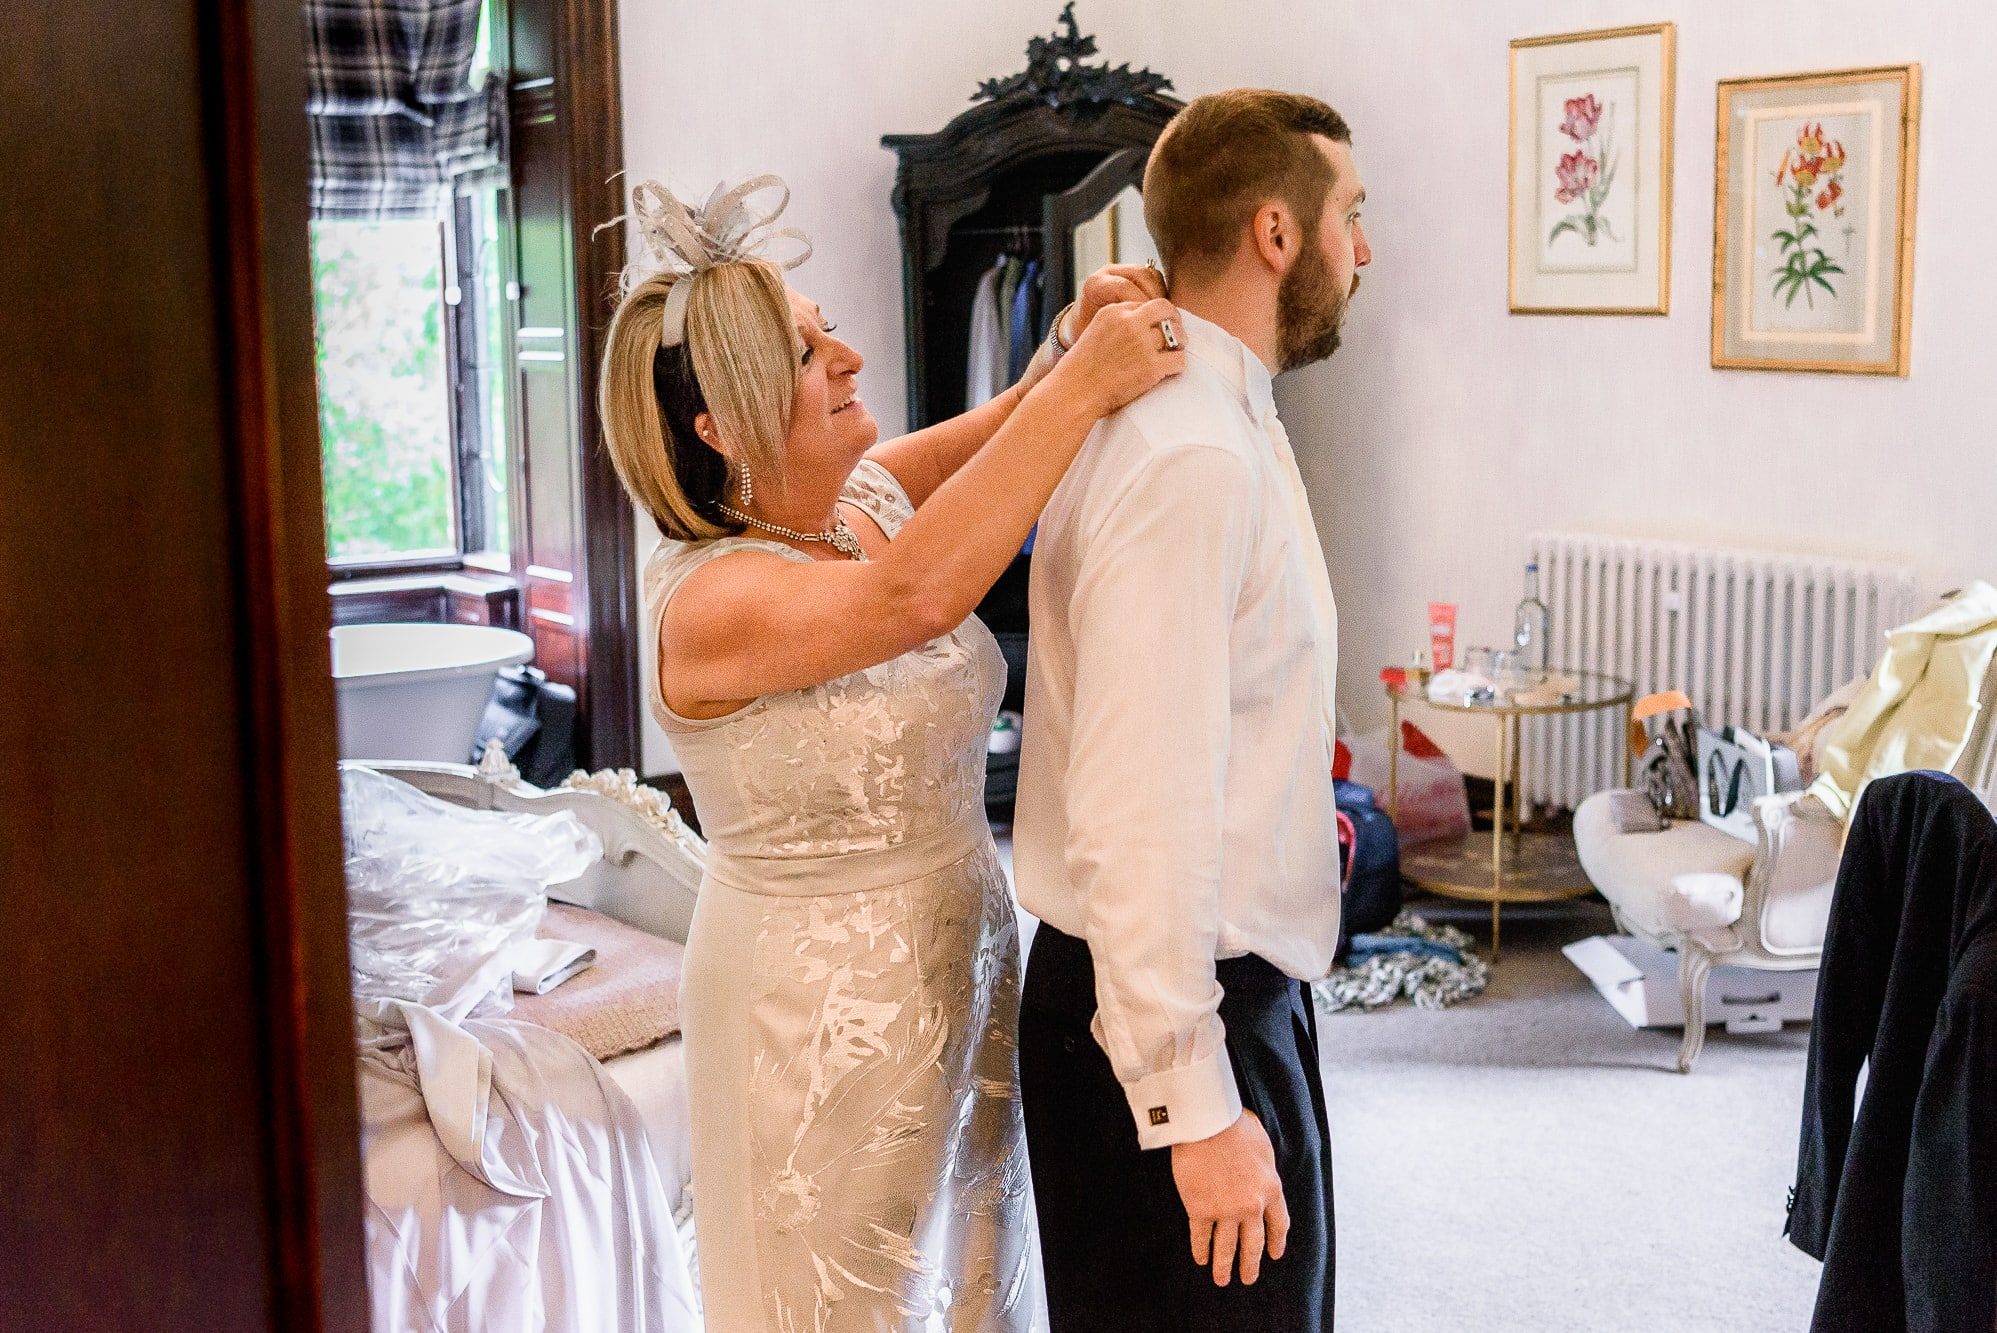 Grooms mum helping groom get dressed